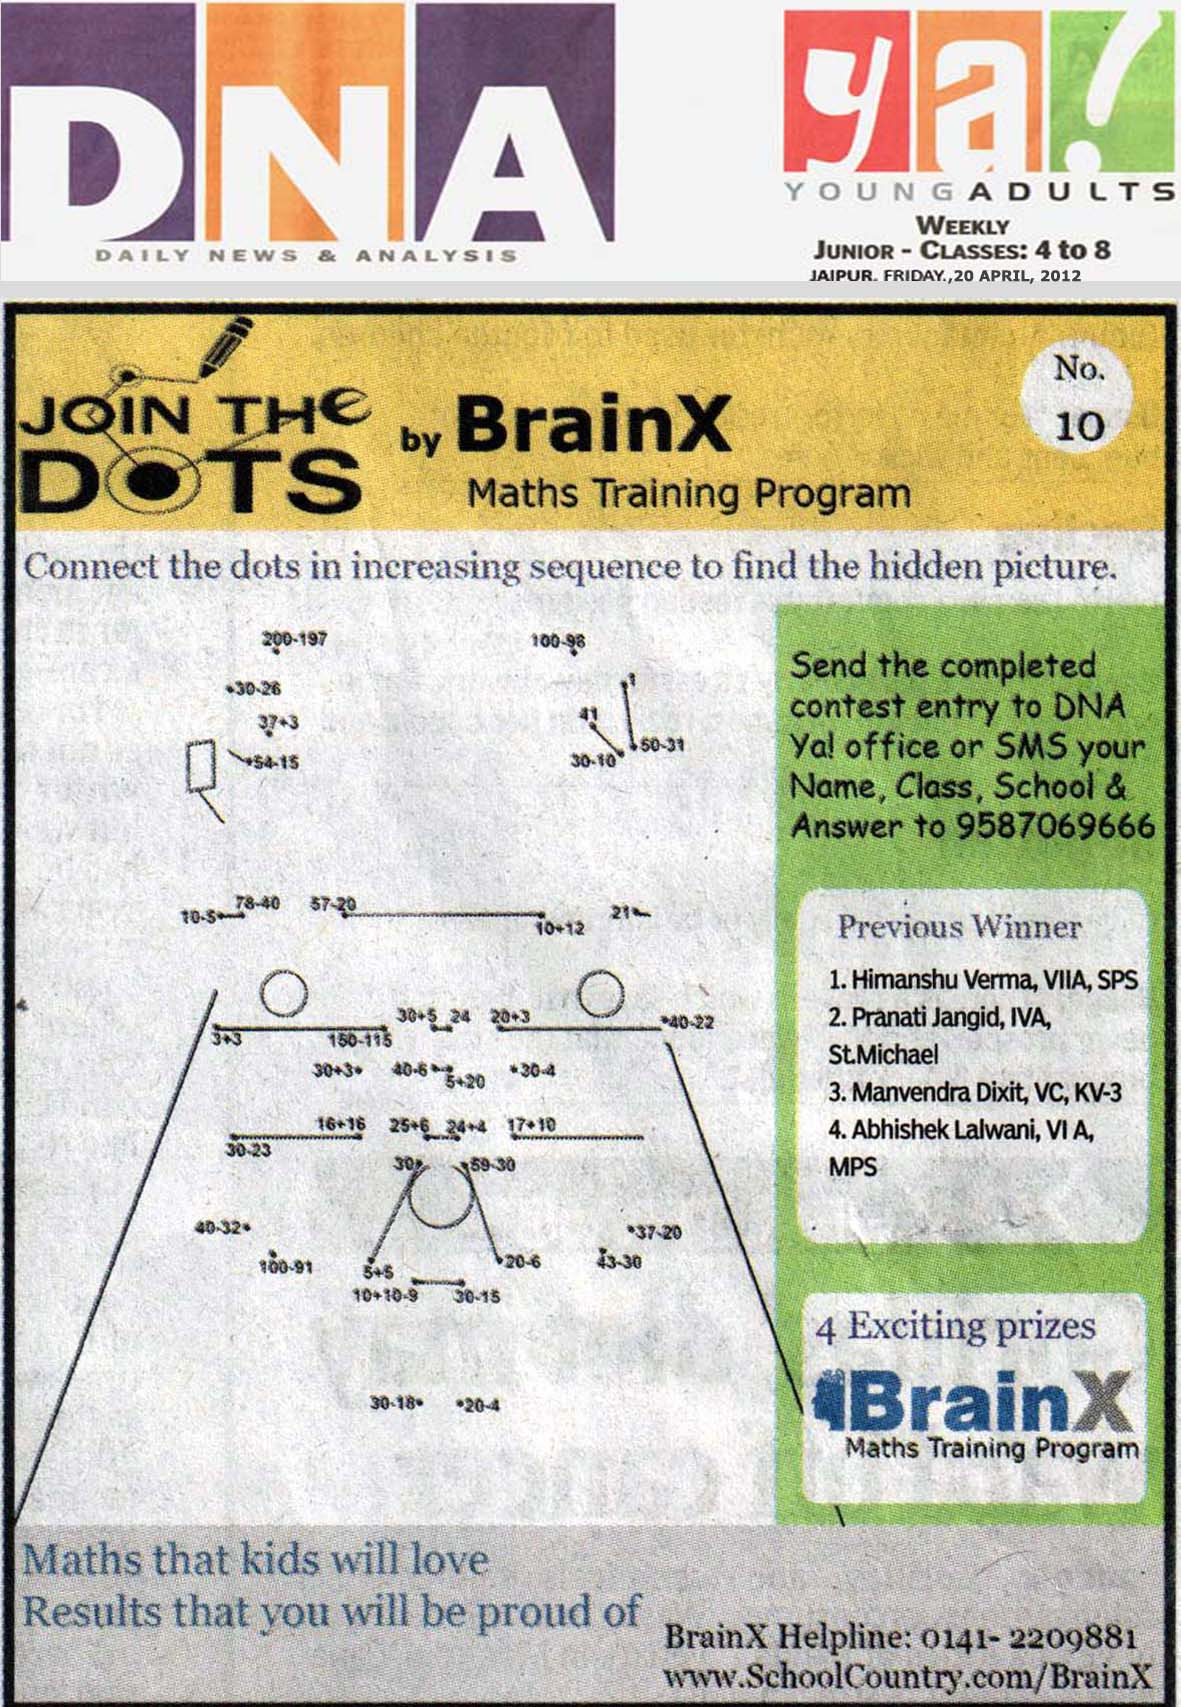 Number Singh Contest by BrainX Math Training Program published in DNA Ya! on 20-04-2012.